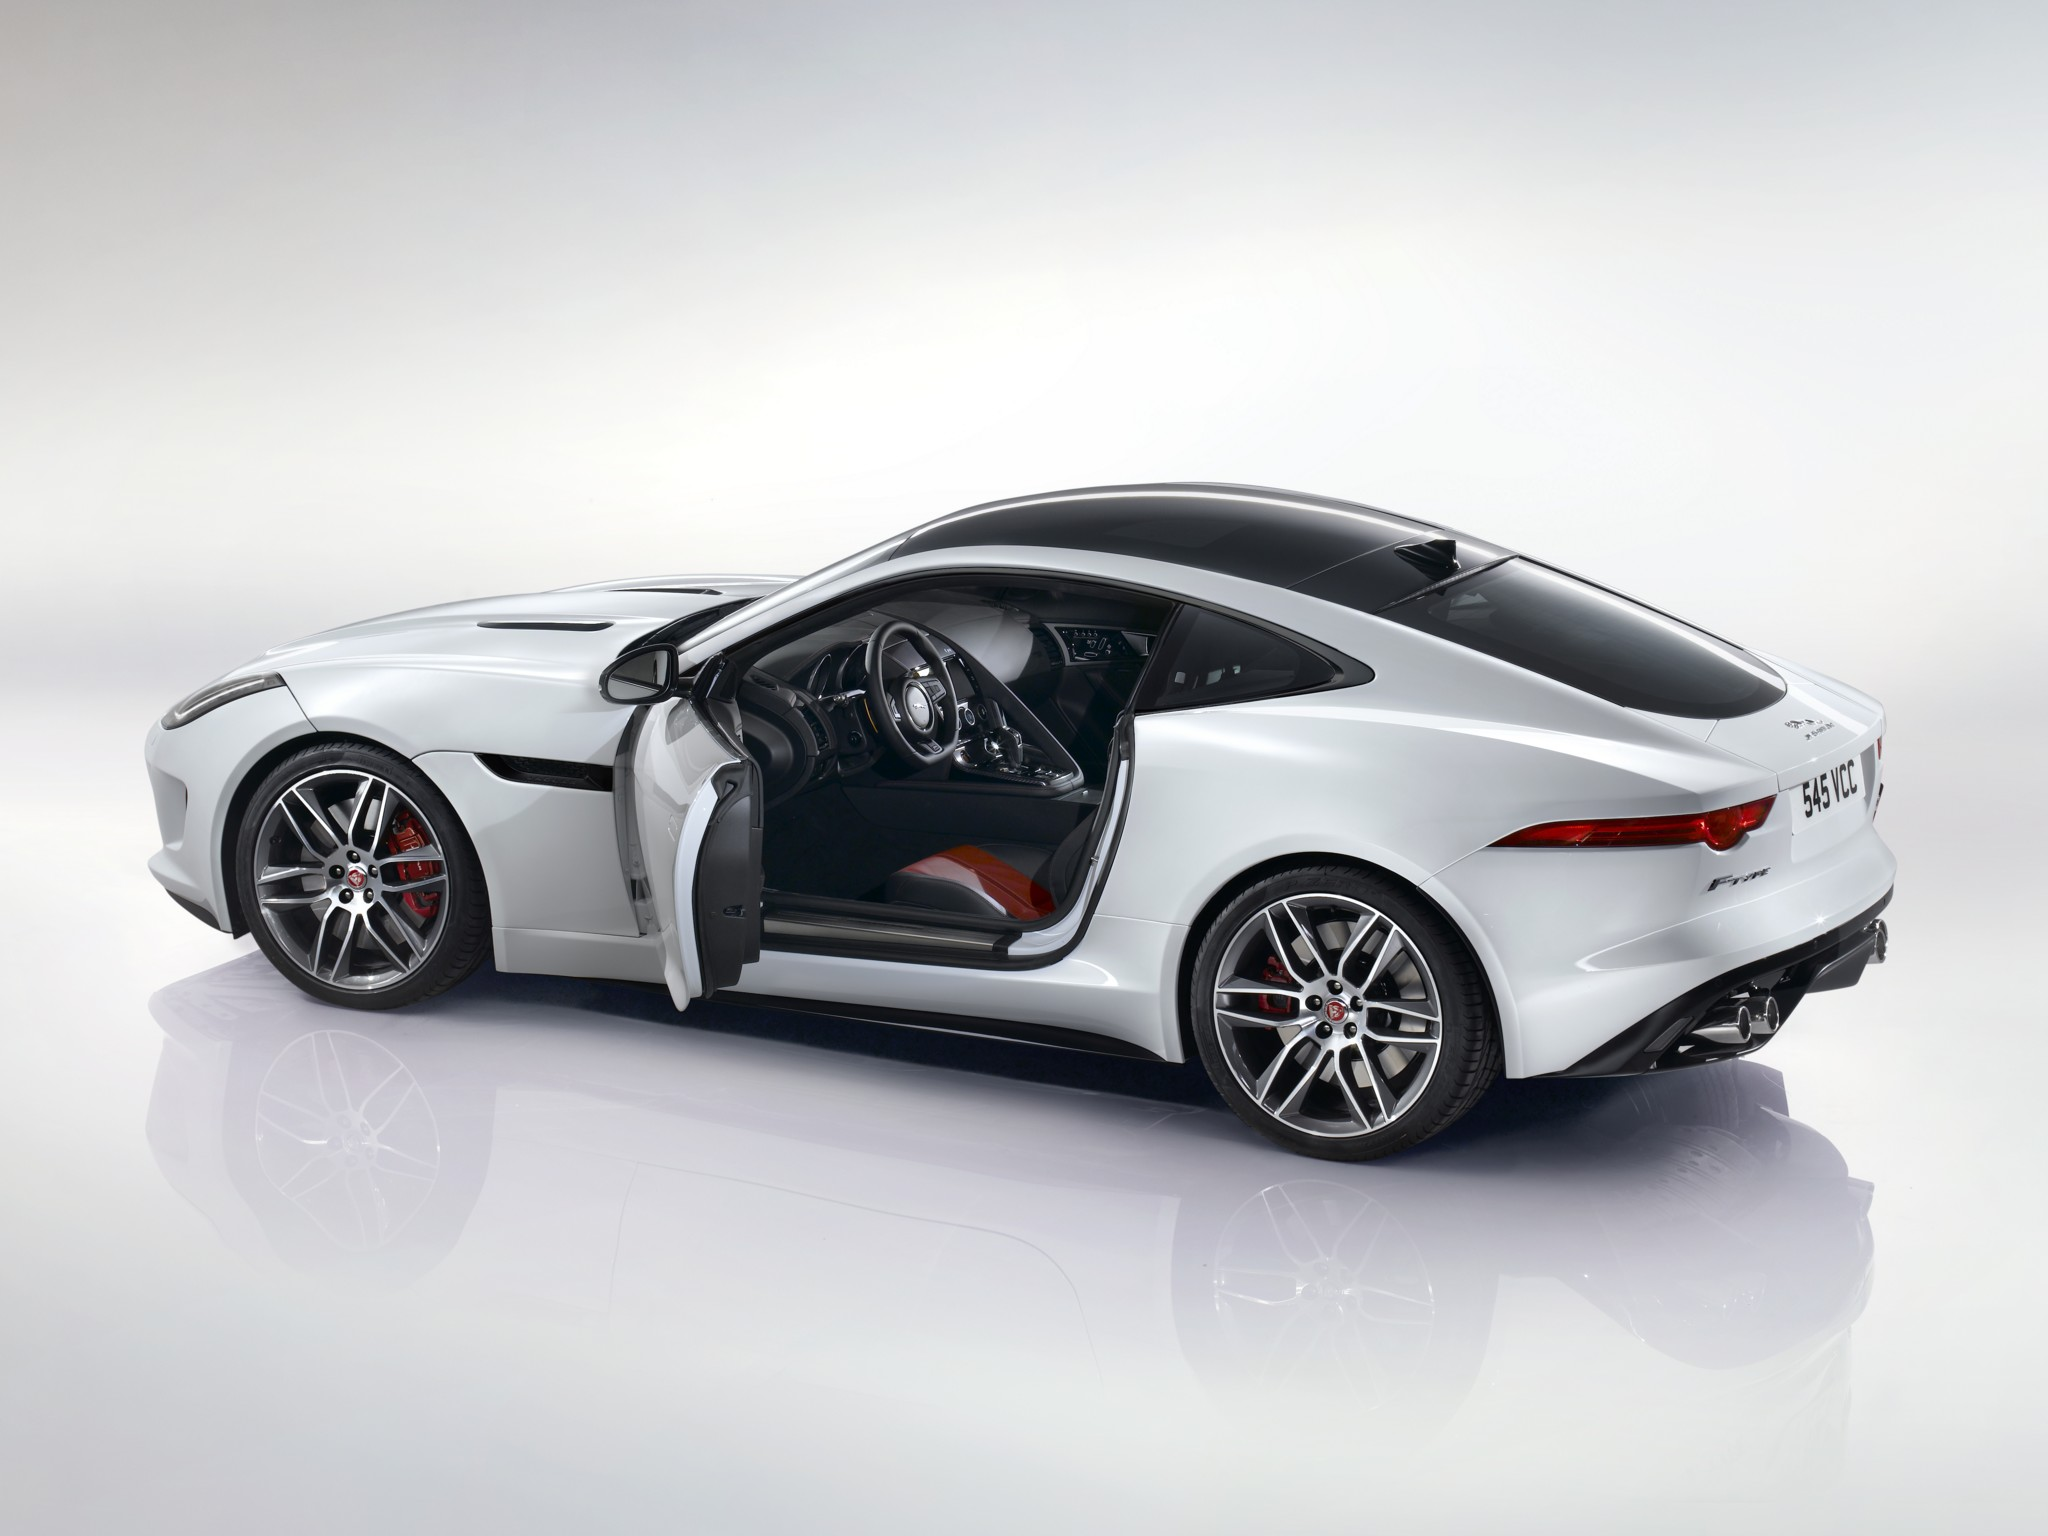 2014 Jaguar F-Type R Coupe interior f wallpaper backgroundJaguar F Type Coupe 2014 Interior